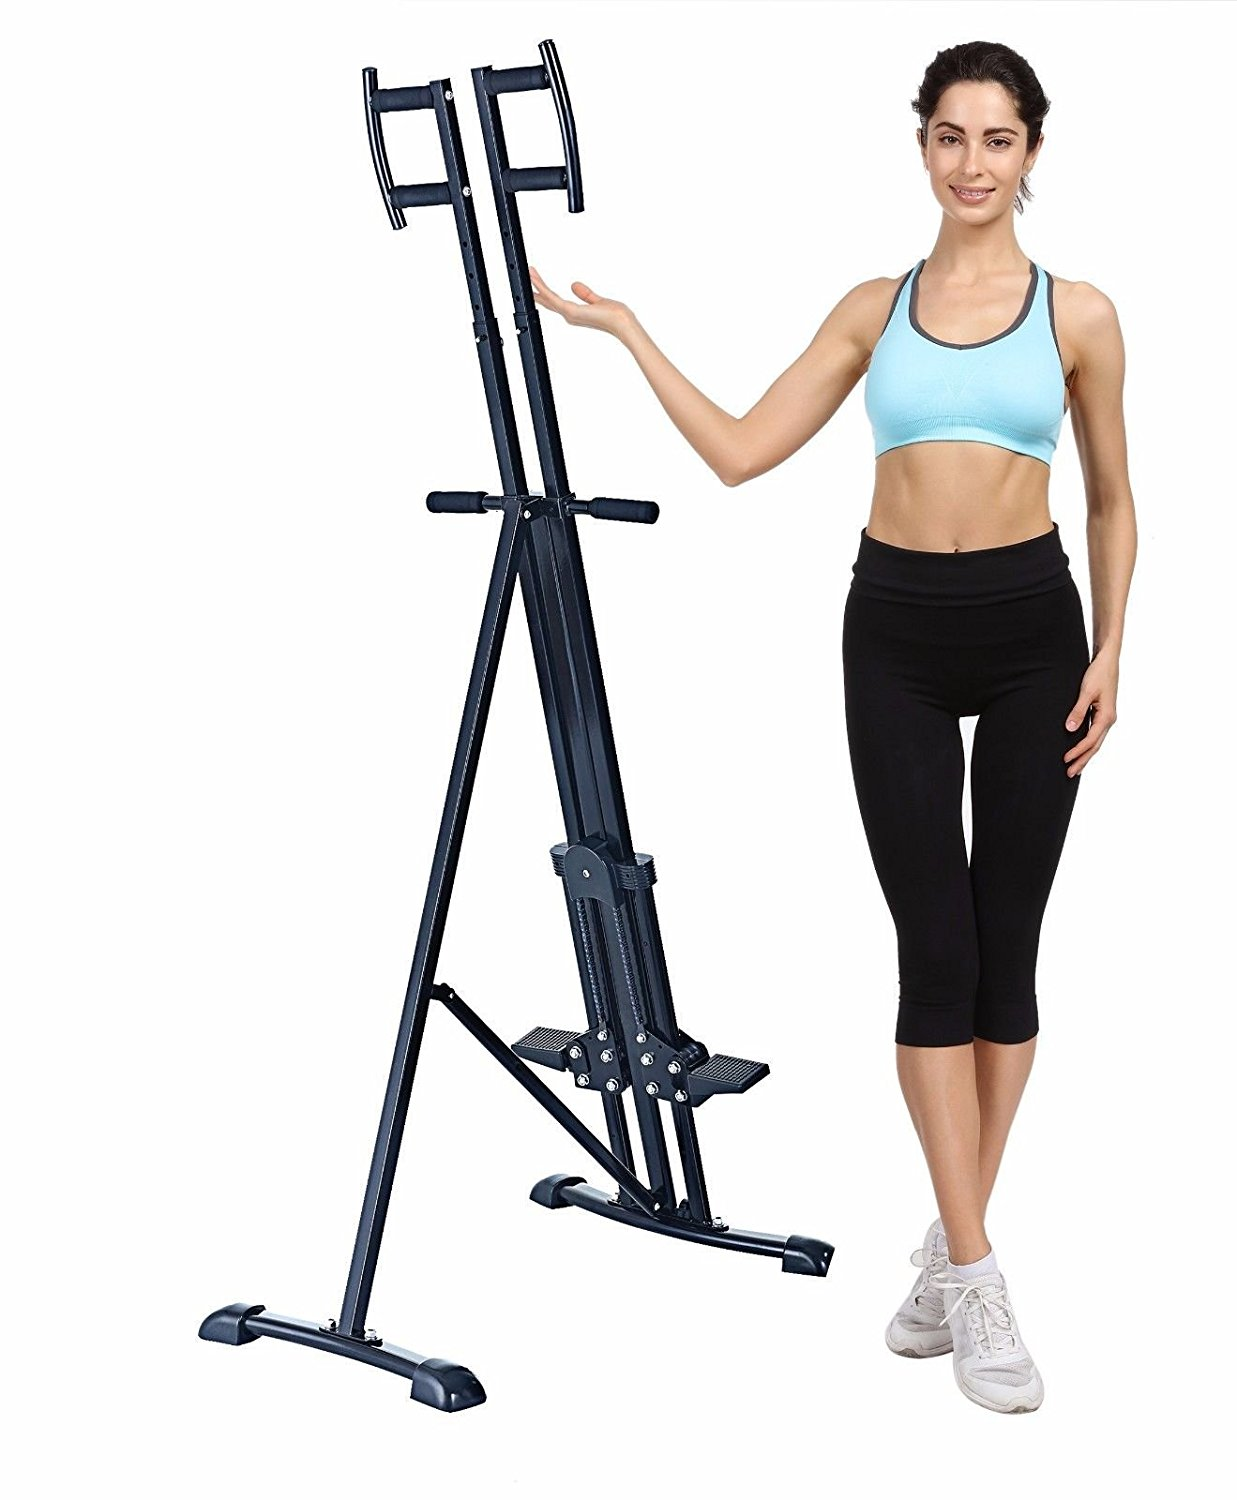 X-Mag Vertical Climber Machine Equipment Stepper Cardio Exercise Workout Gym by X-MAG